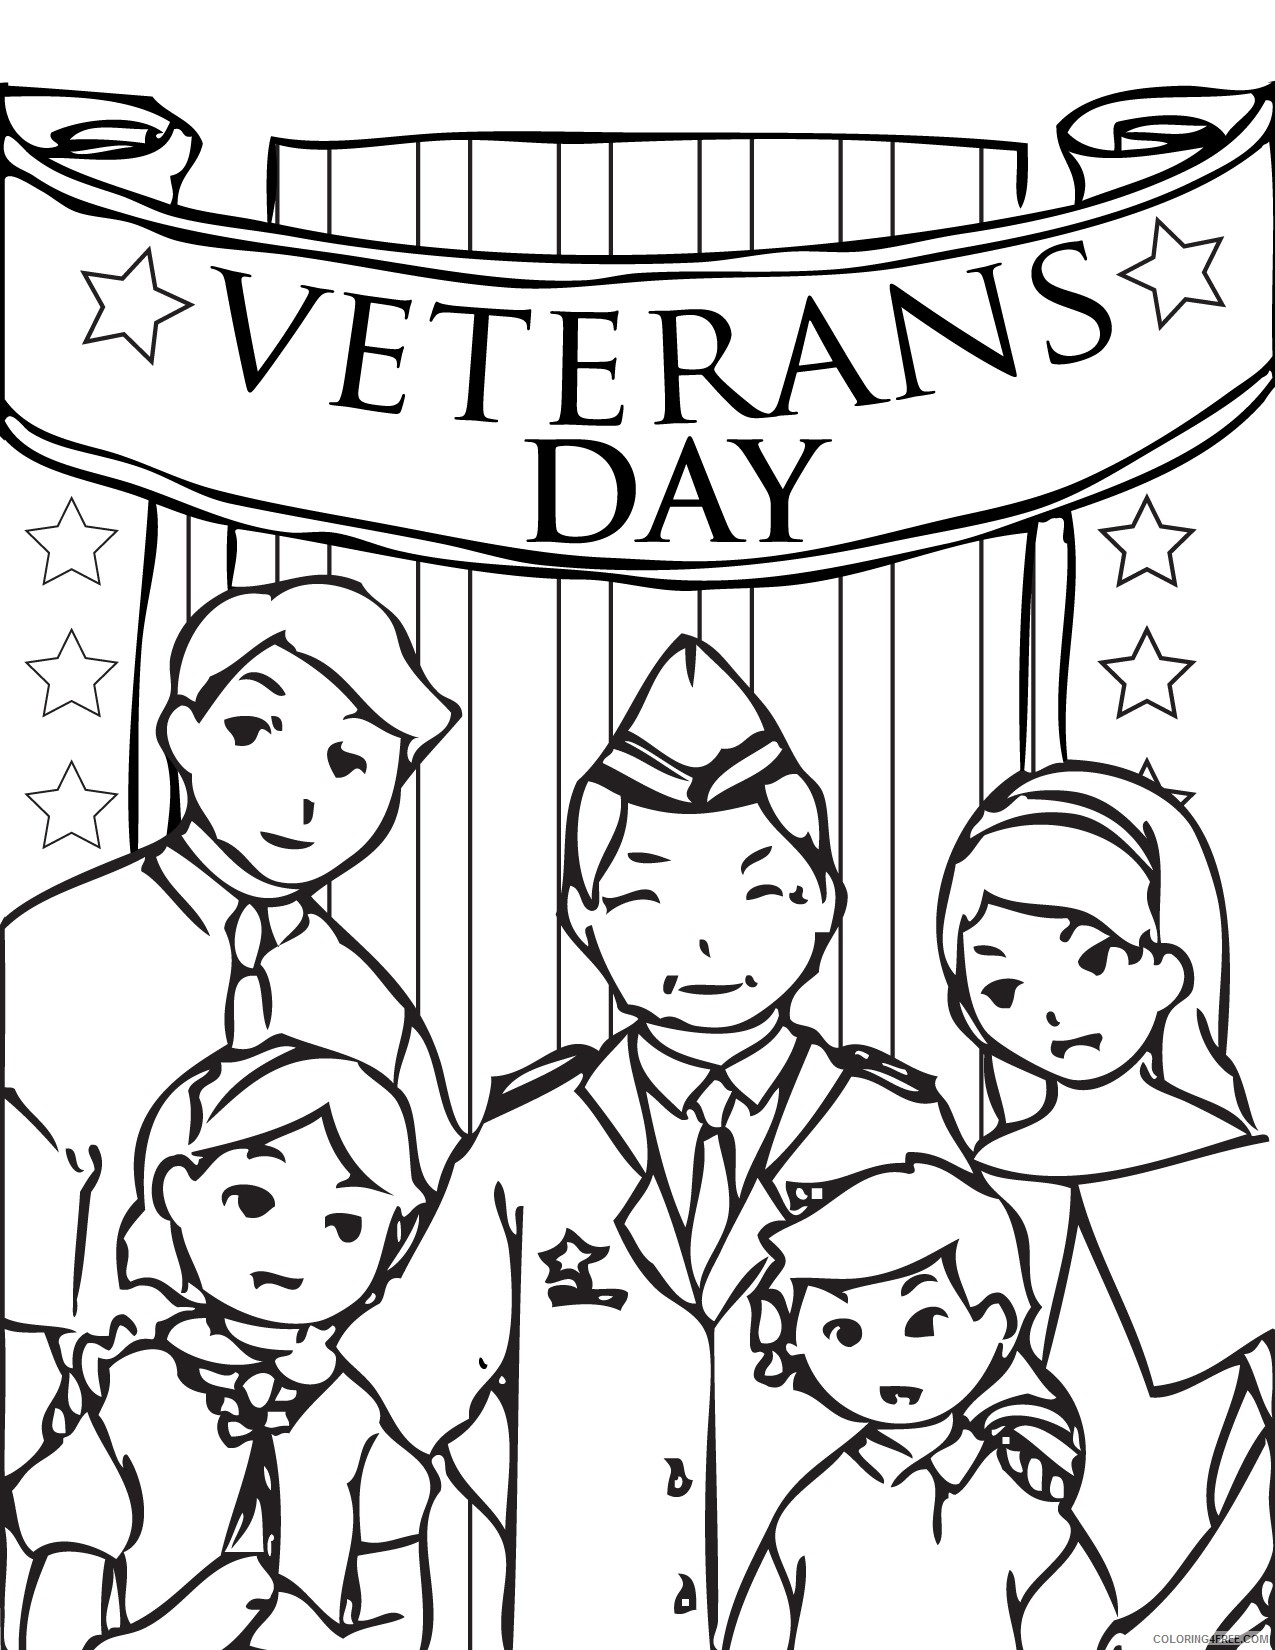 - Veterans Day Coloring Pages Family Coloring4free - Coloring4Free.com